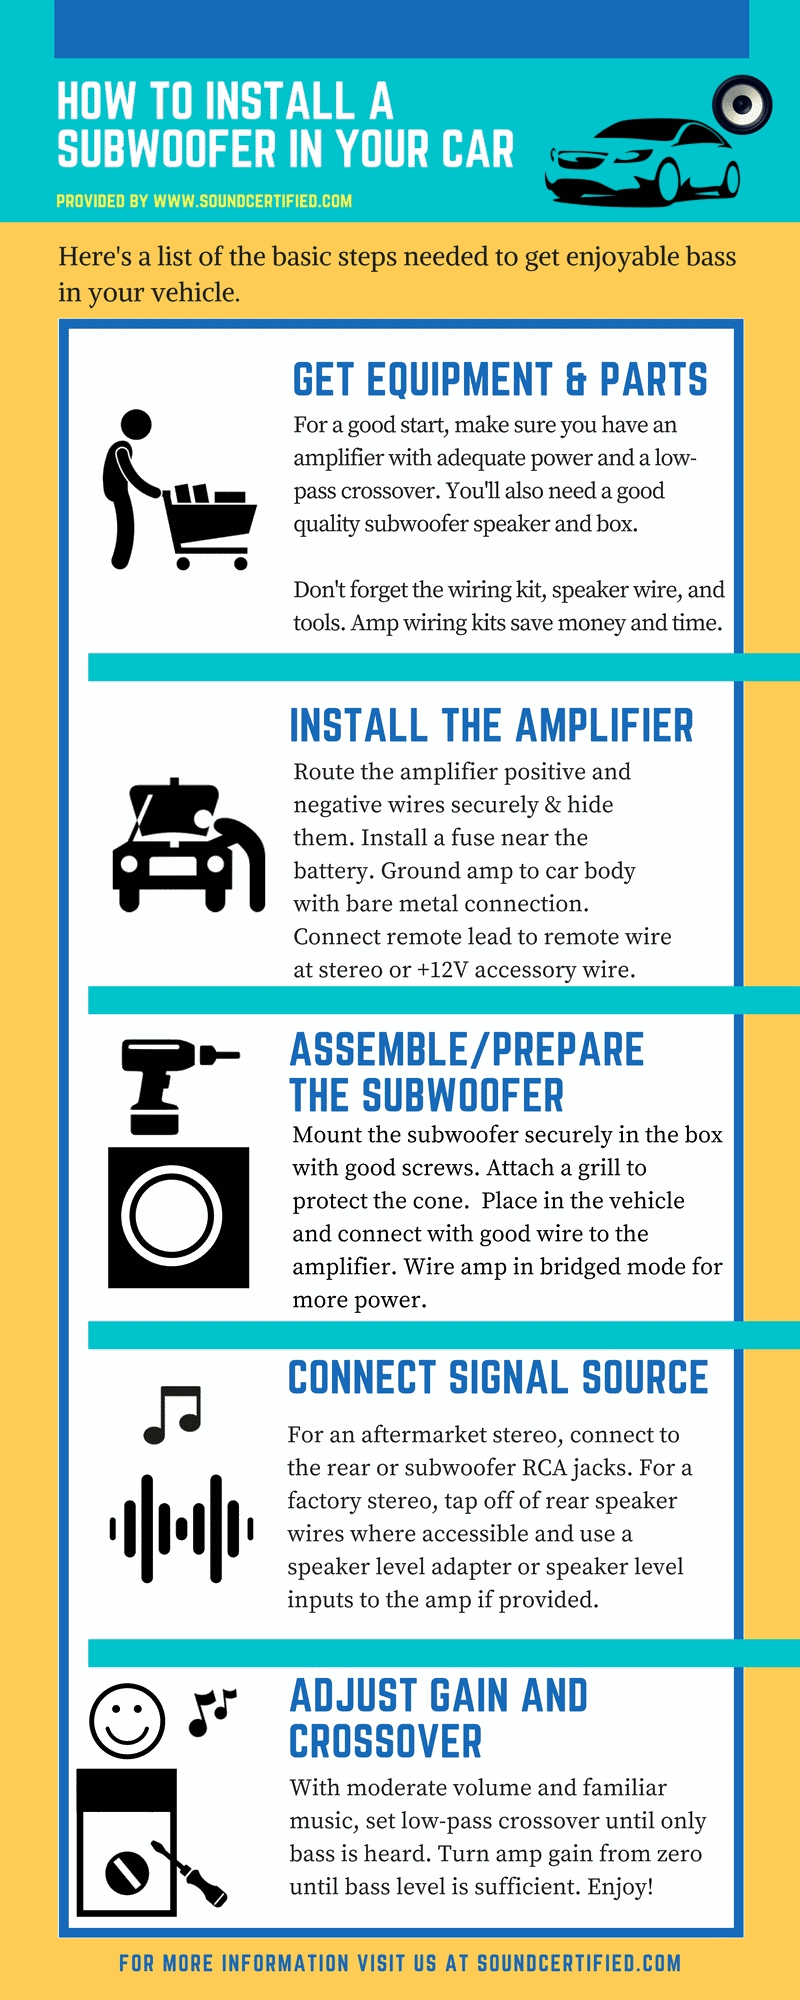 How To Install A Subwoofer And Amp In Your Car The Diy You Should Print Out Copy Of This Wiring Diagram It Come Infographic For